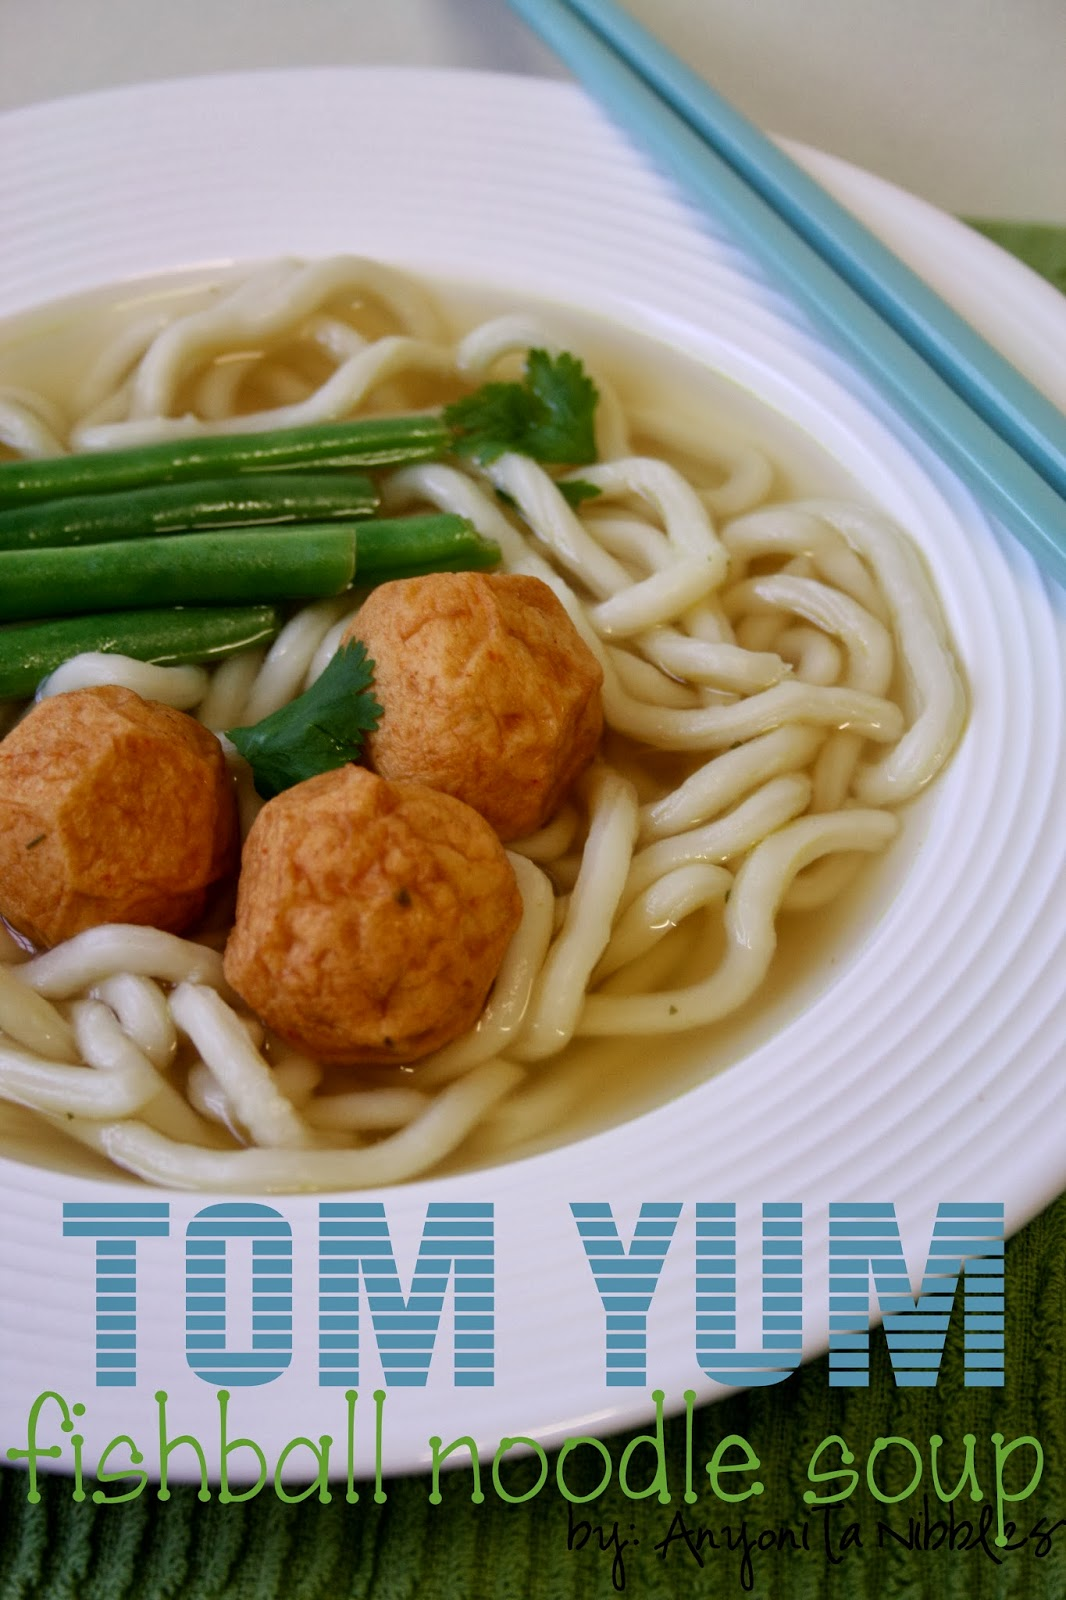 Tom Yum Fishball Noodle Soup